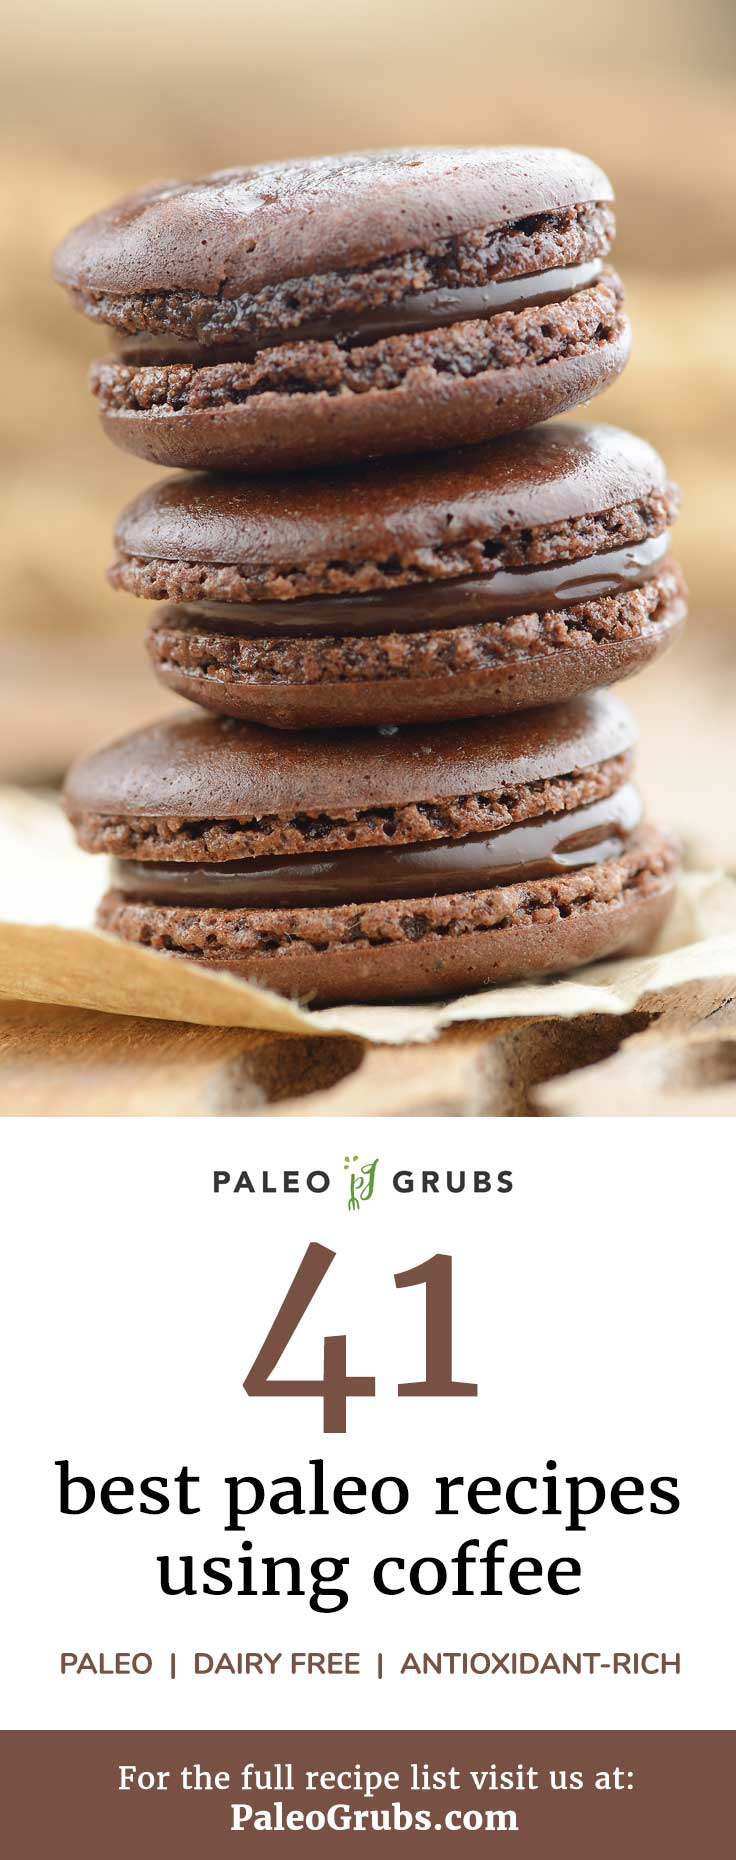 Try one of these genius paleo-friendly recipes made with coffee. Chock full of antioxidants and that deep coffee flavor you love.